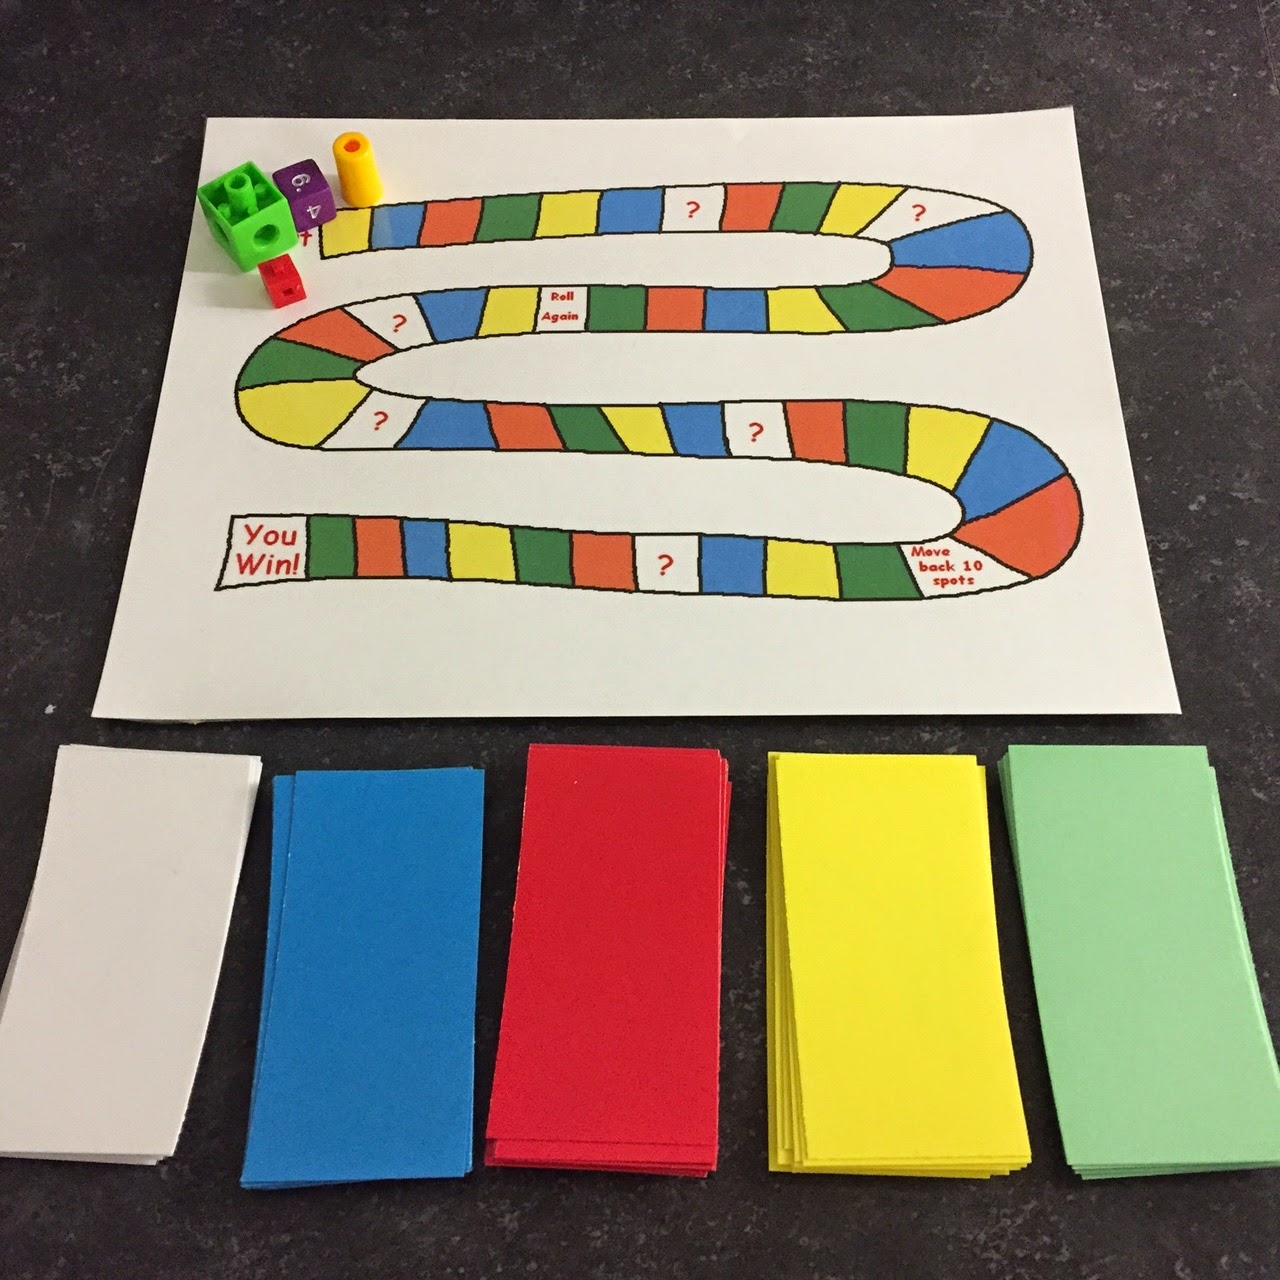 geometry in games Return from classifying angles game to math tic-tac-toe games, geometry math games, or to math play homepage for other similar games, please visit the 5th grade math games or 6th grade math games pages.